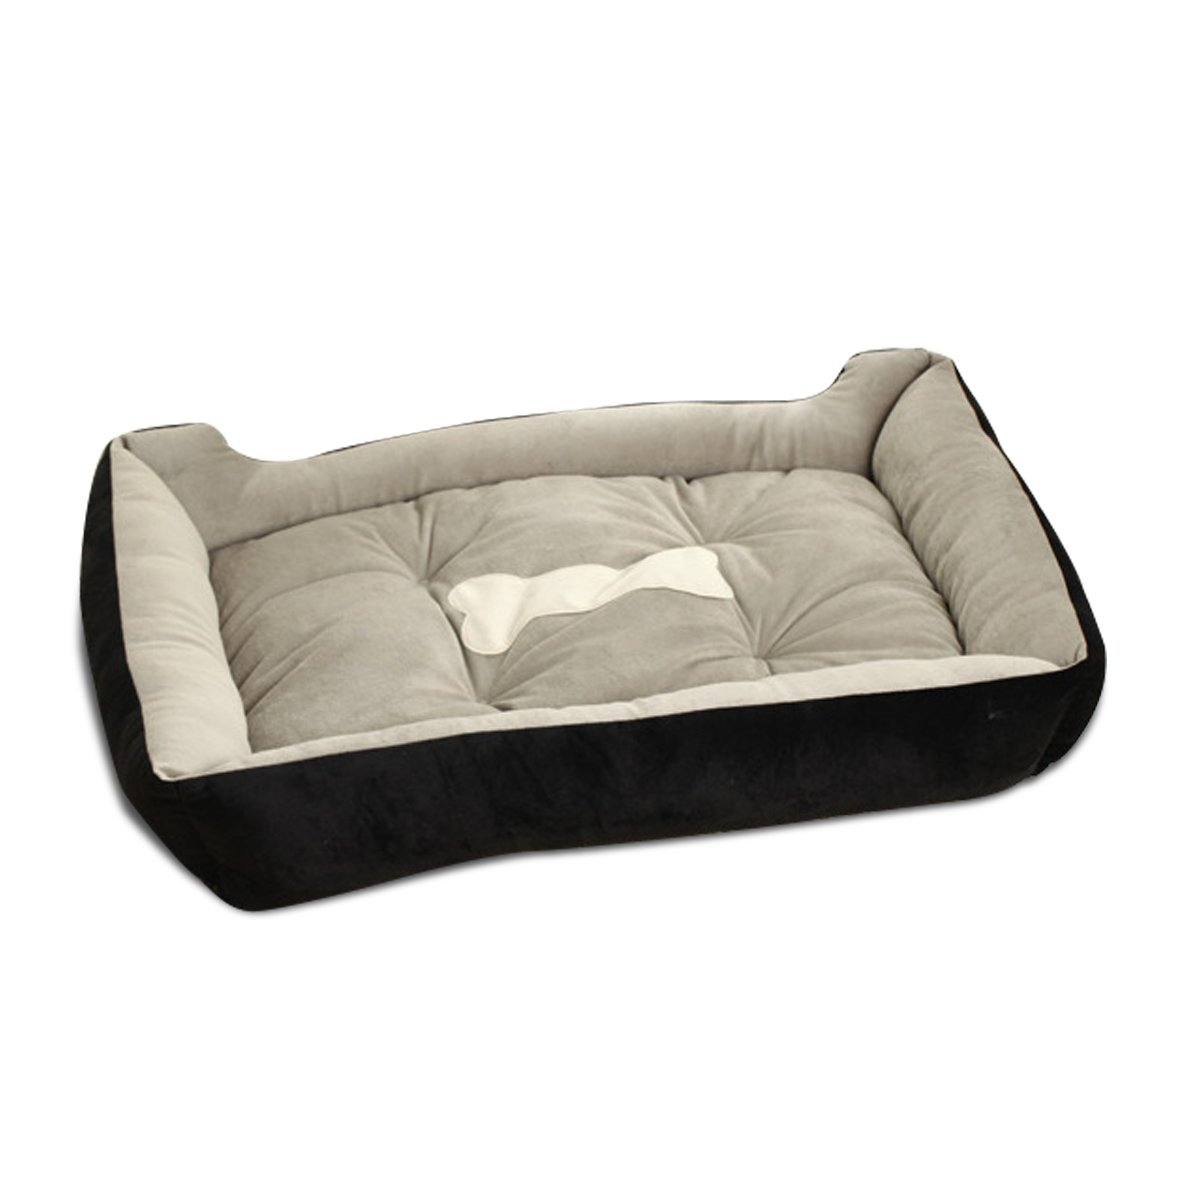 PETCUTE Dog Bed Faux Sheepskin Lining,dog winter bolster bed dog cushion Fully Washable, 6Sizes, Cat Bed, Pet Beds